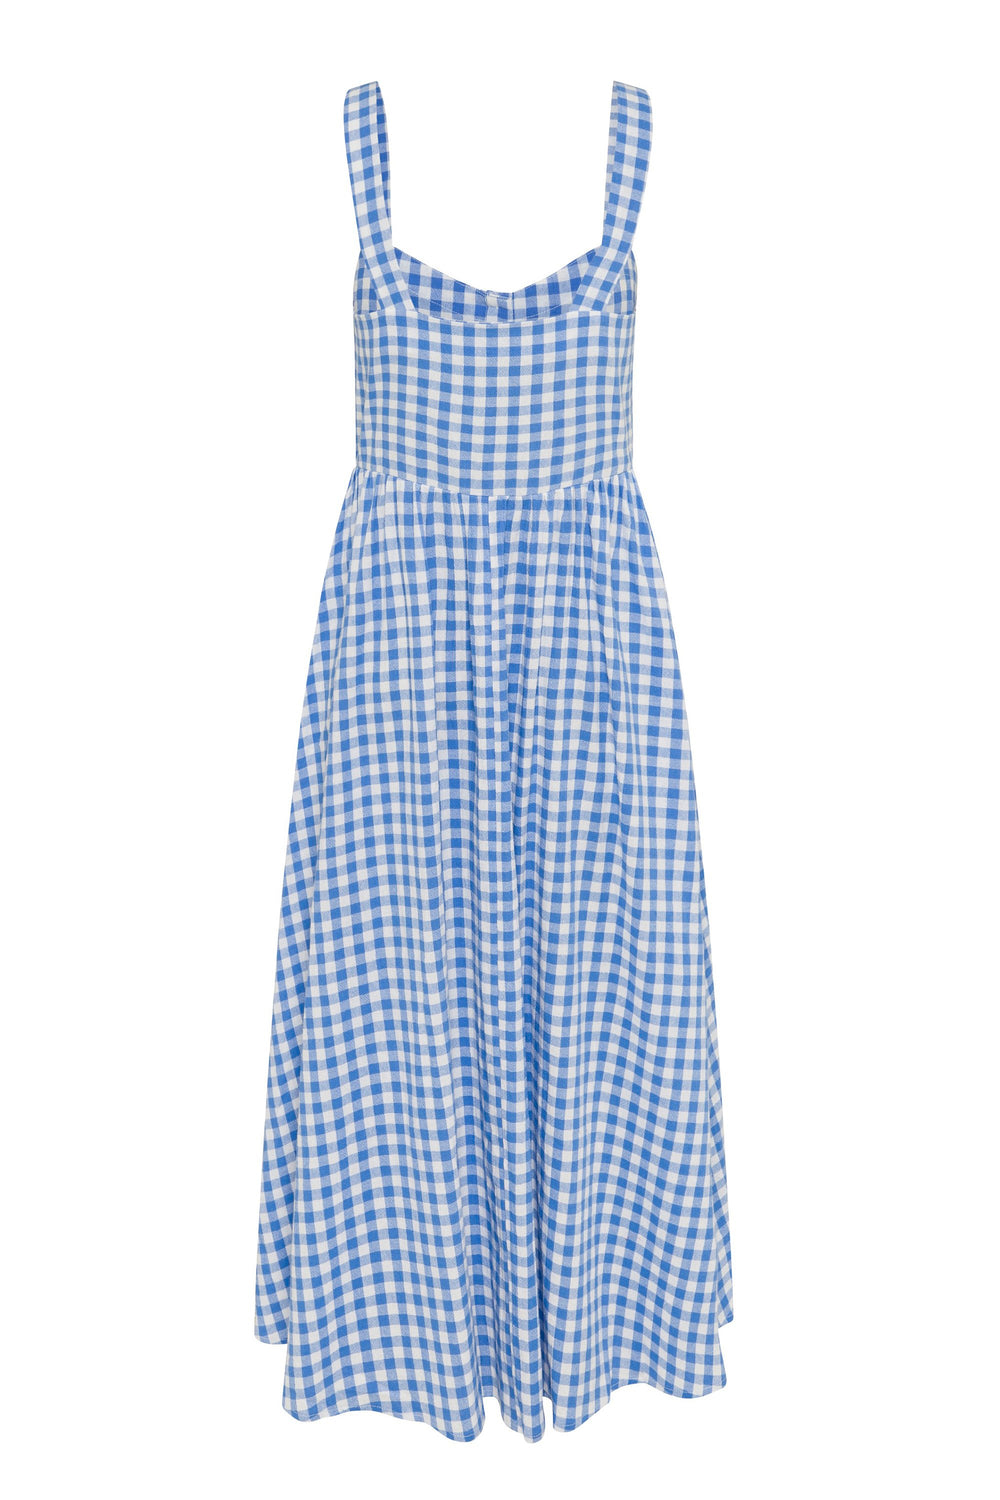 Ruby Dress In Blue Gingham